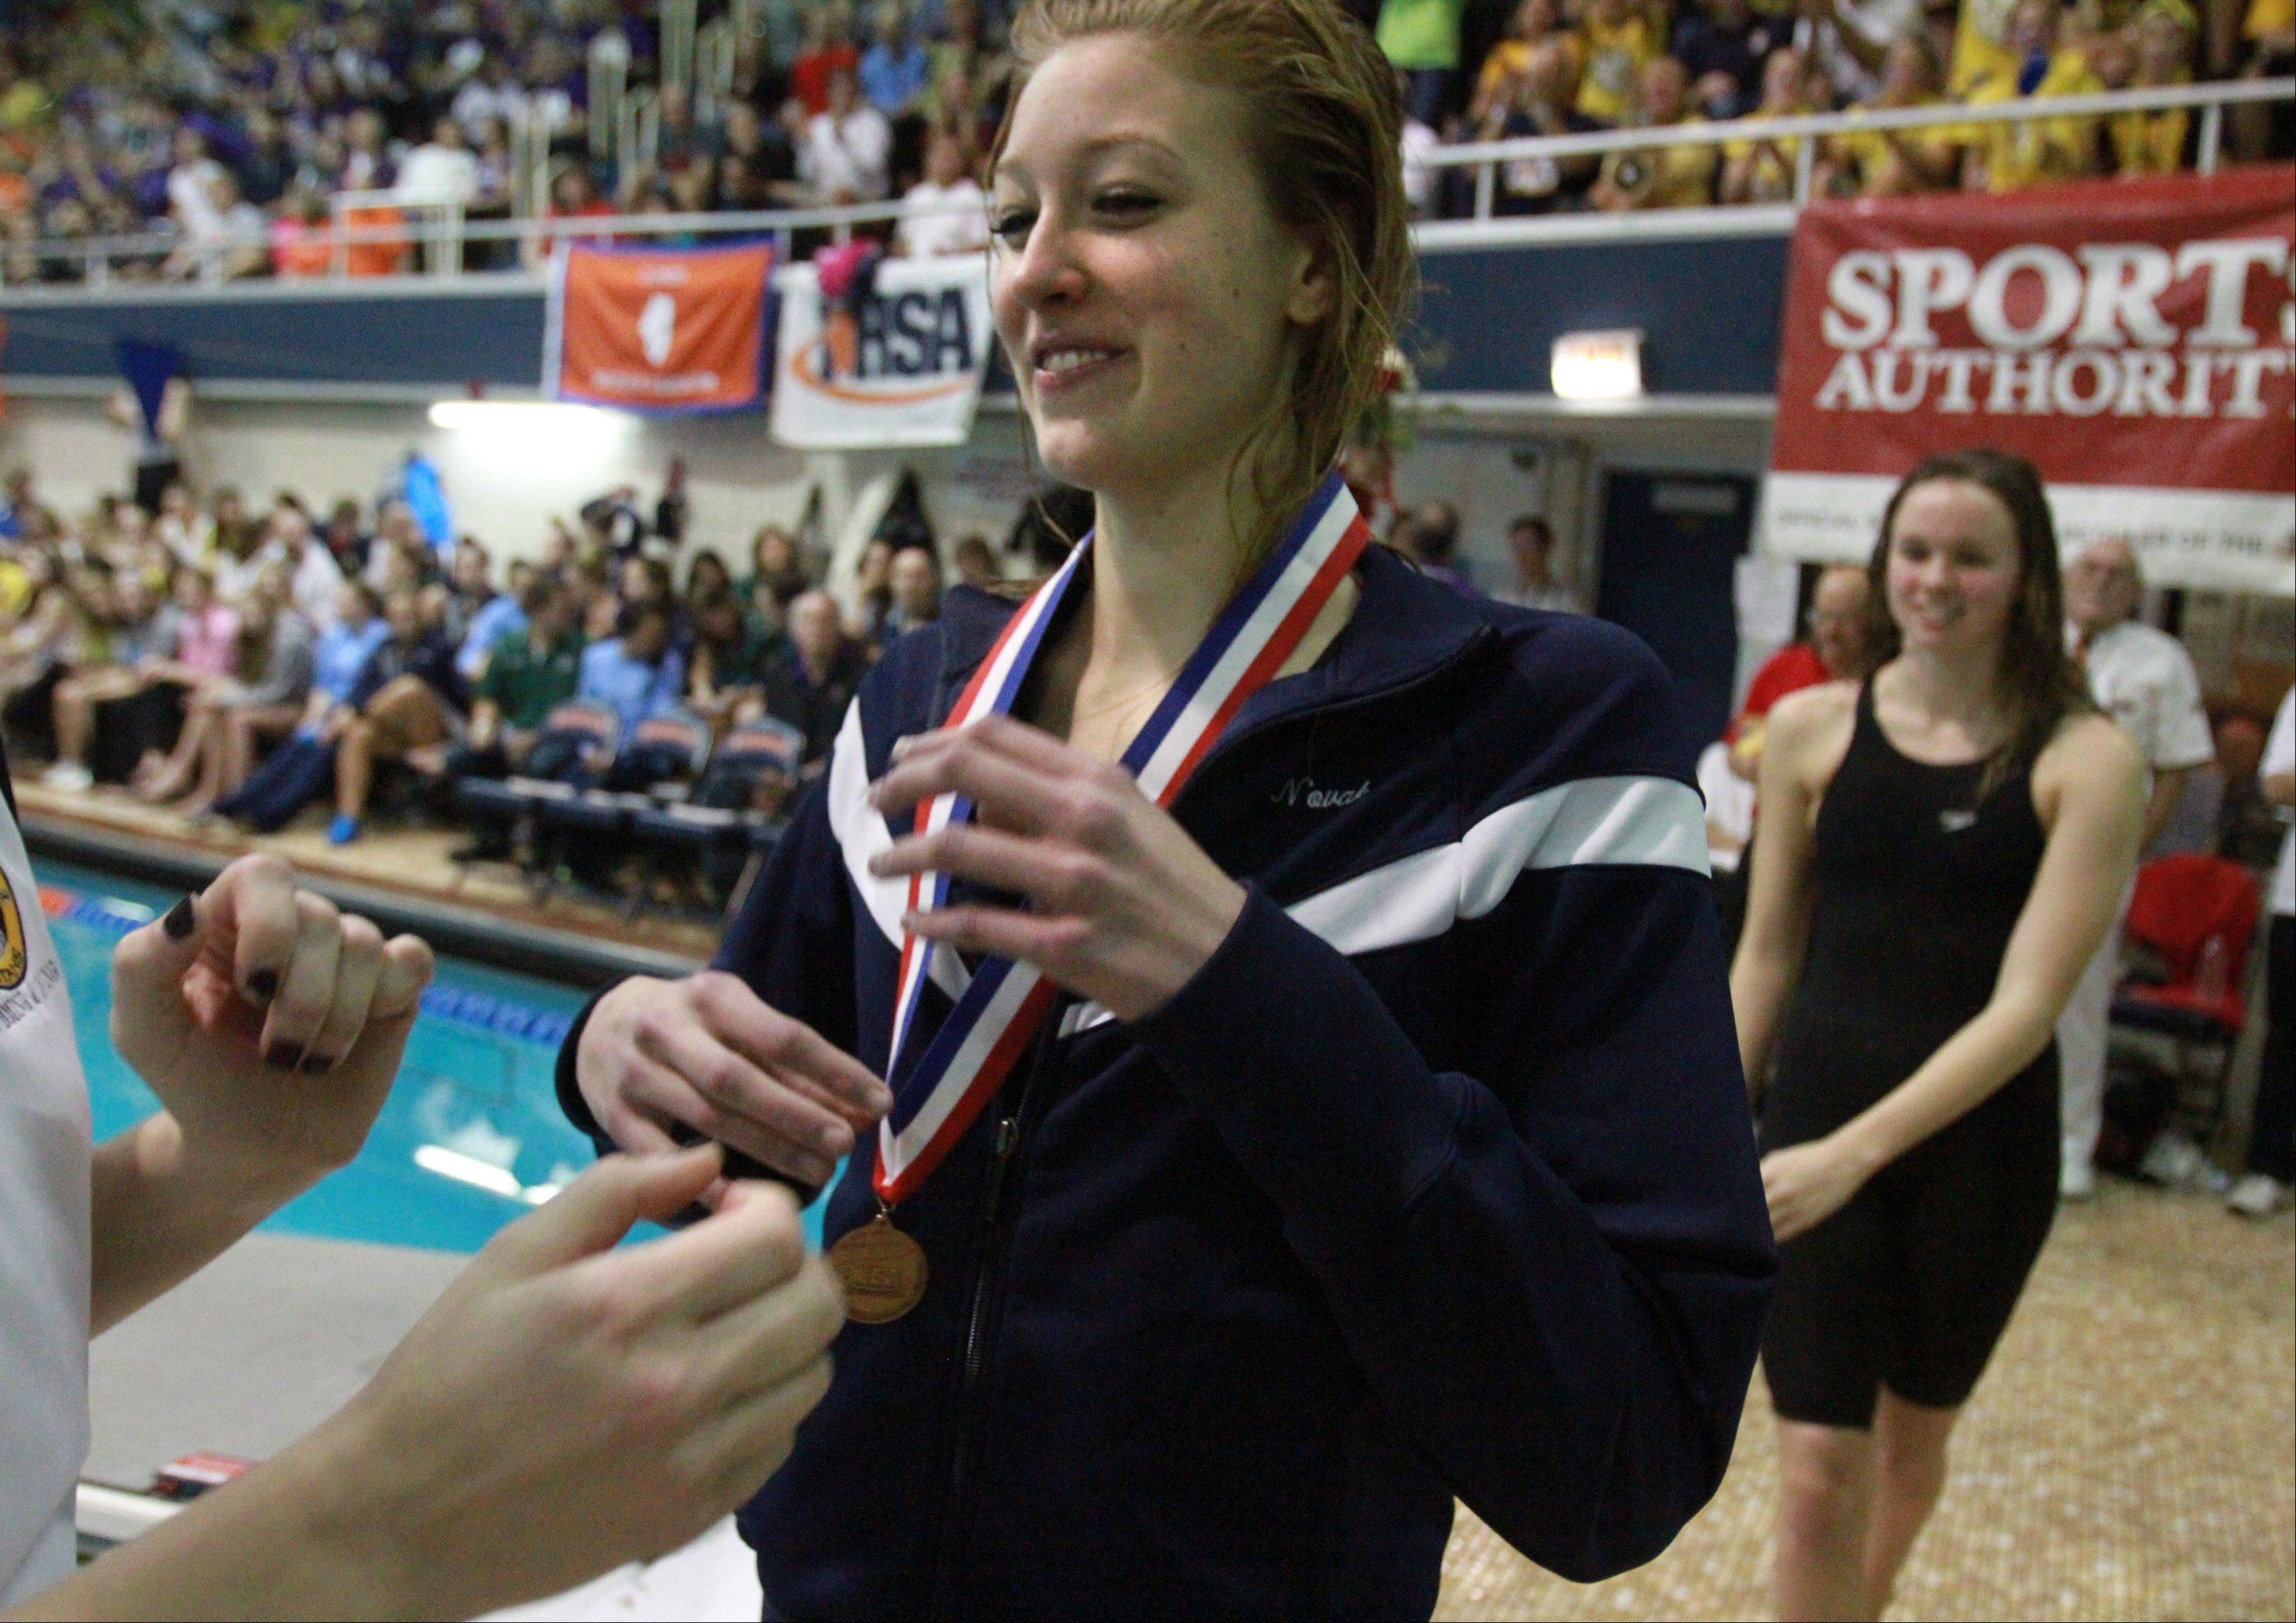 Naperville North's Amy Novak placed fifth in the 200-yard freestyle at the IHSA state championships in Evanston on Saturday.